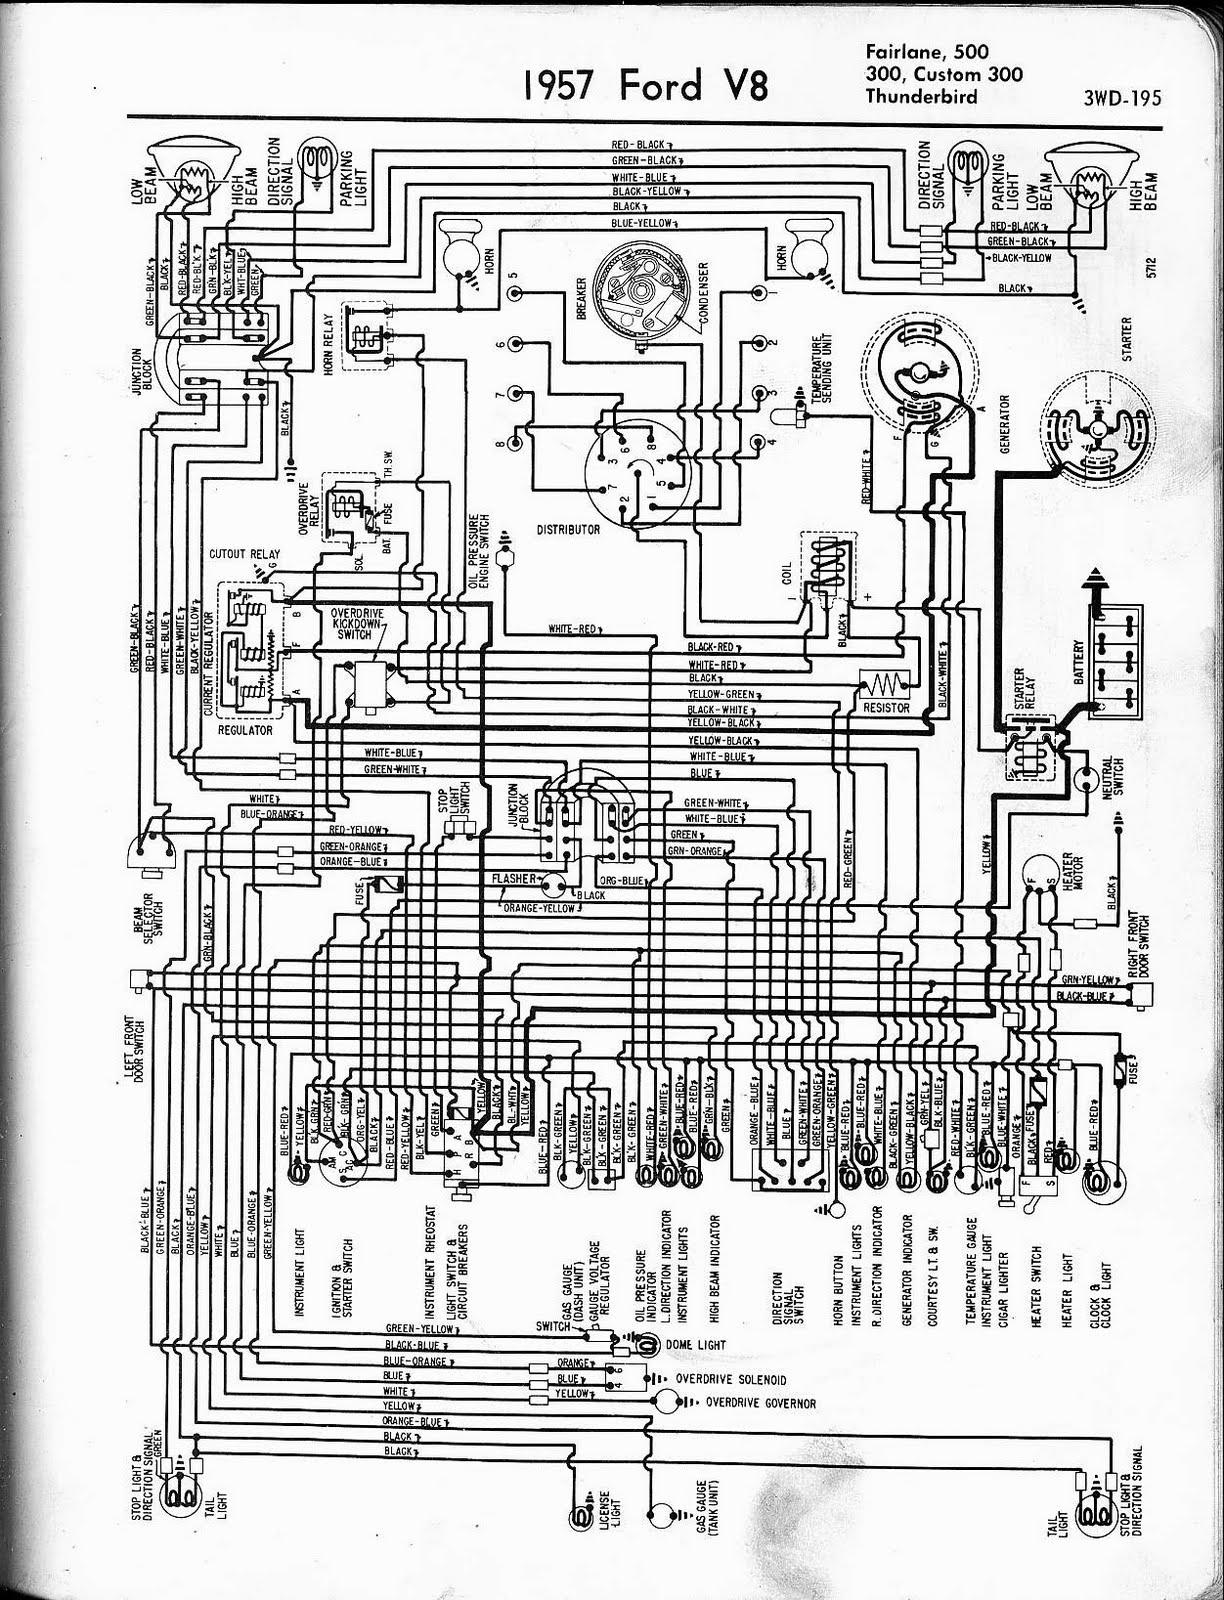 medium resolution of free auto wiring diagram 1957 ford v8 fairlane custom300 1947 plymouth wiring harness plymouth duster wiring